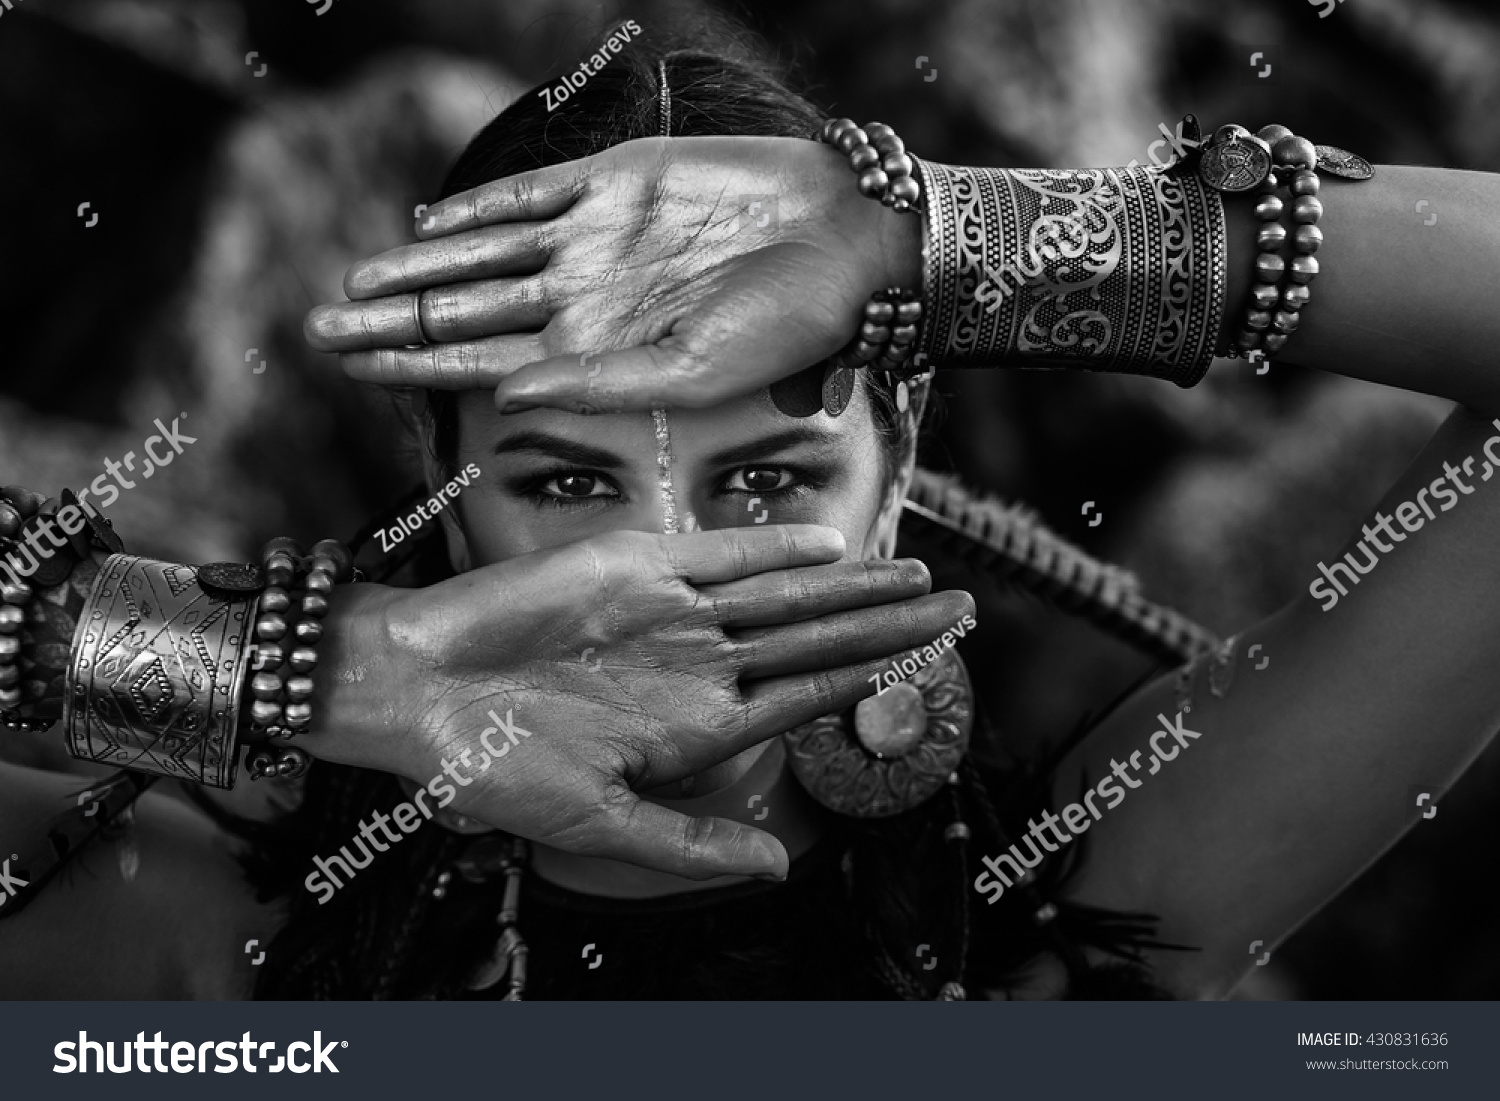 tribal woman close up black and white portrait